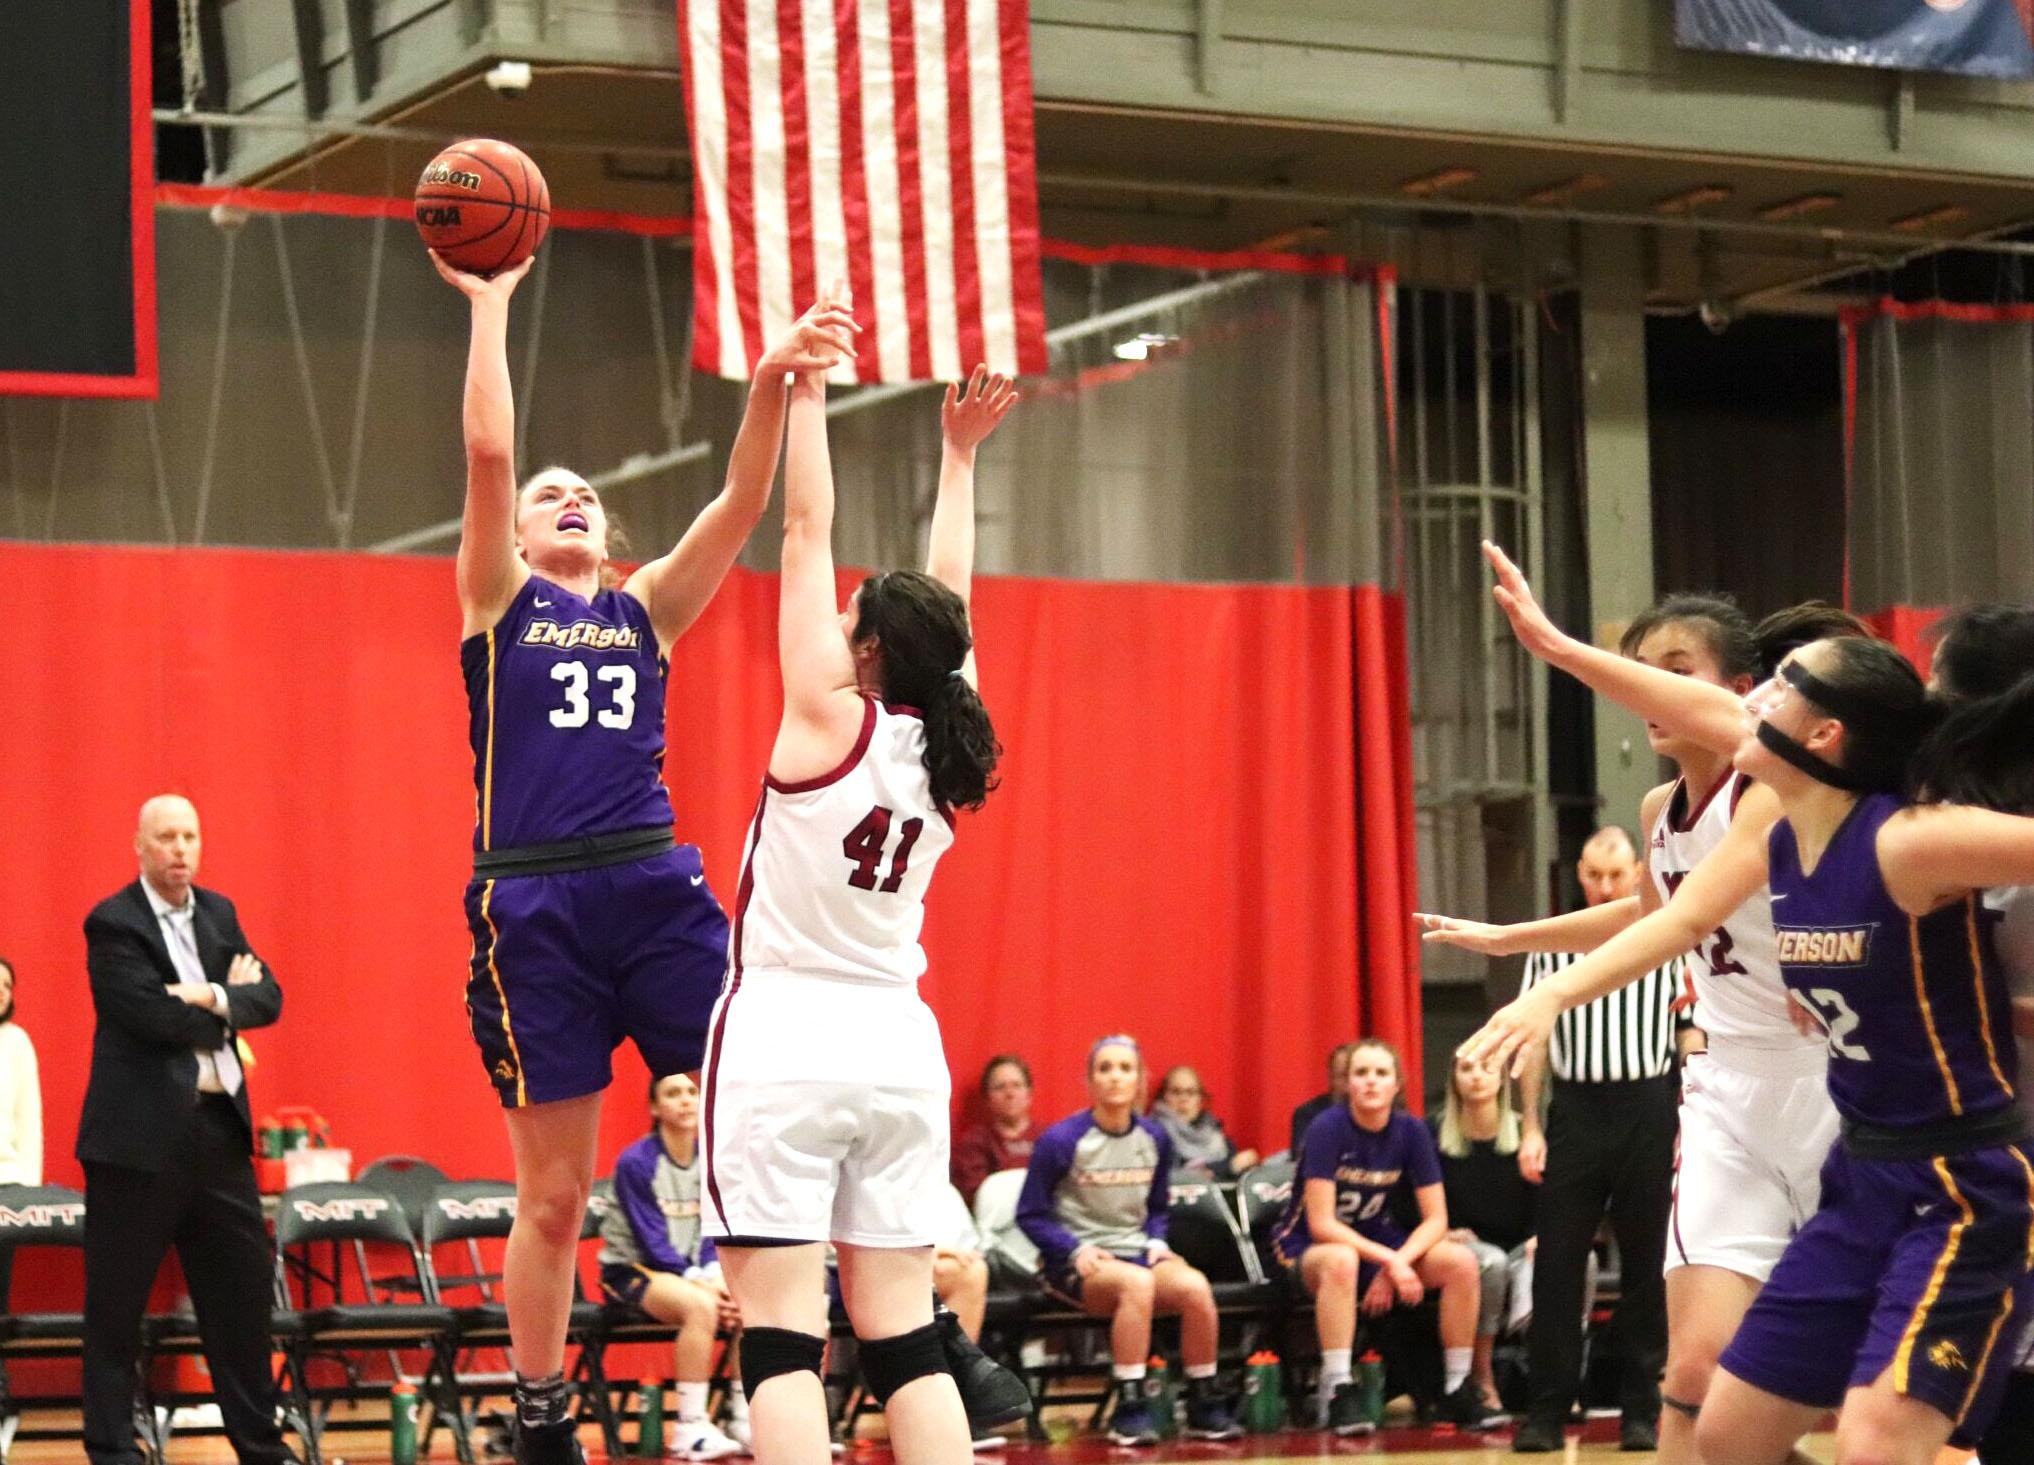 Senior Charlie Boyle (left, No. 33) goes up for a layup and senior Natalie Busch (right, No. 12) waits for the rebound in the NEWMAC quarterfinals against MIT. Photo by Arturo Ruiz / Beacon Correspondent